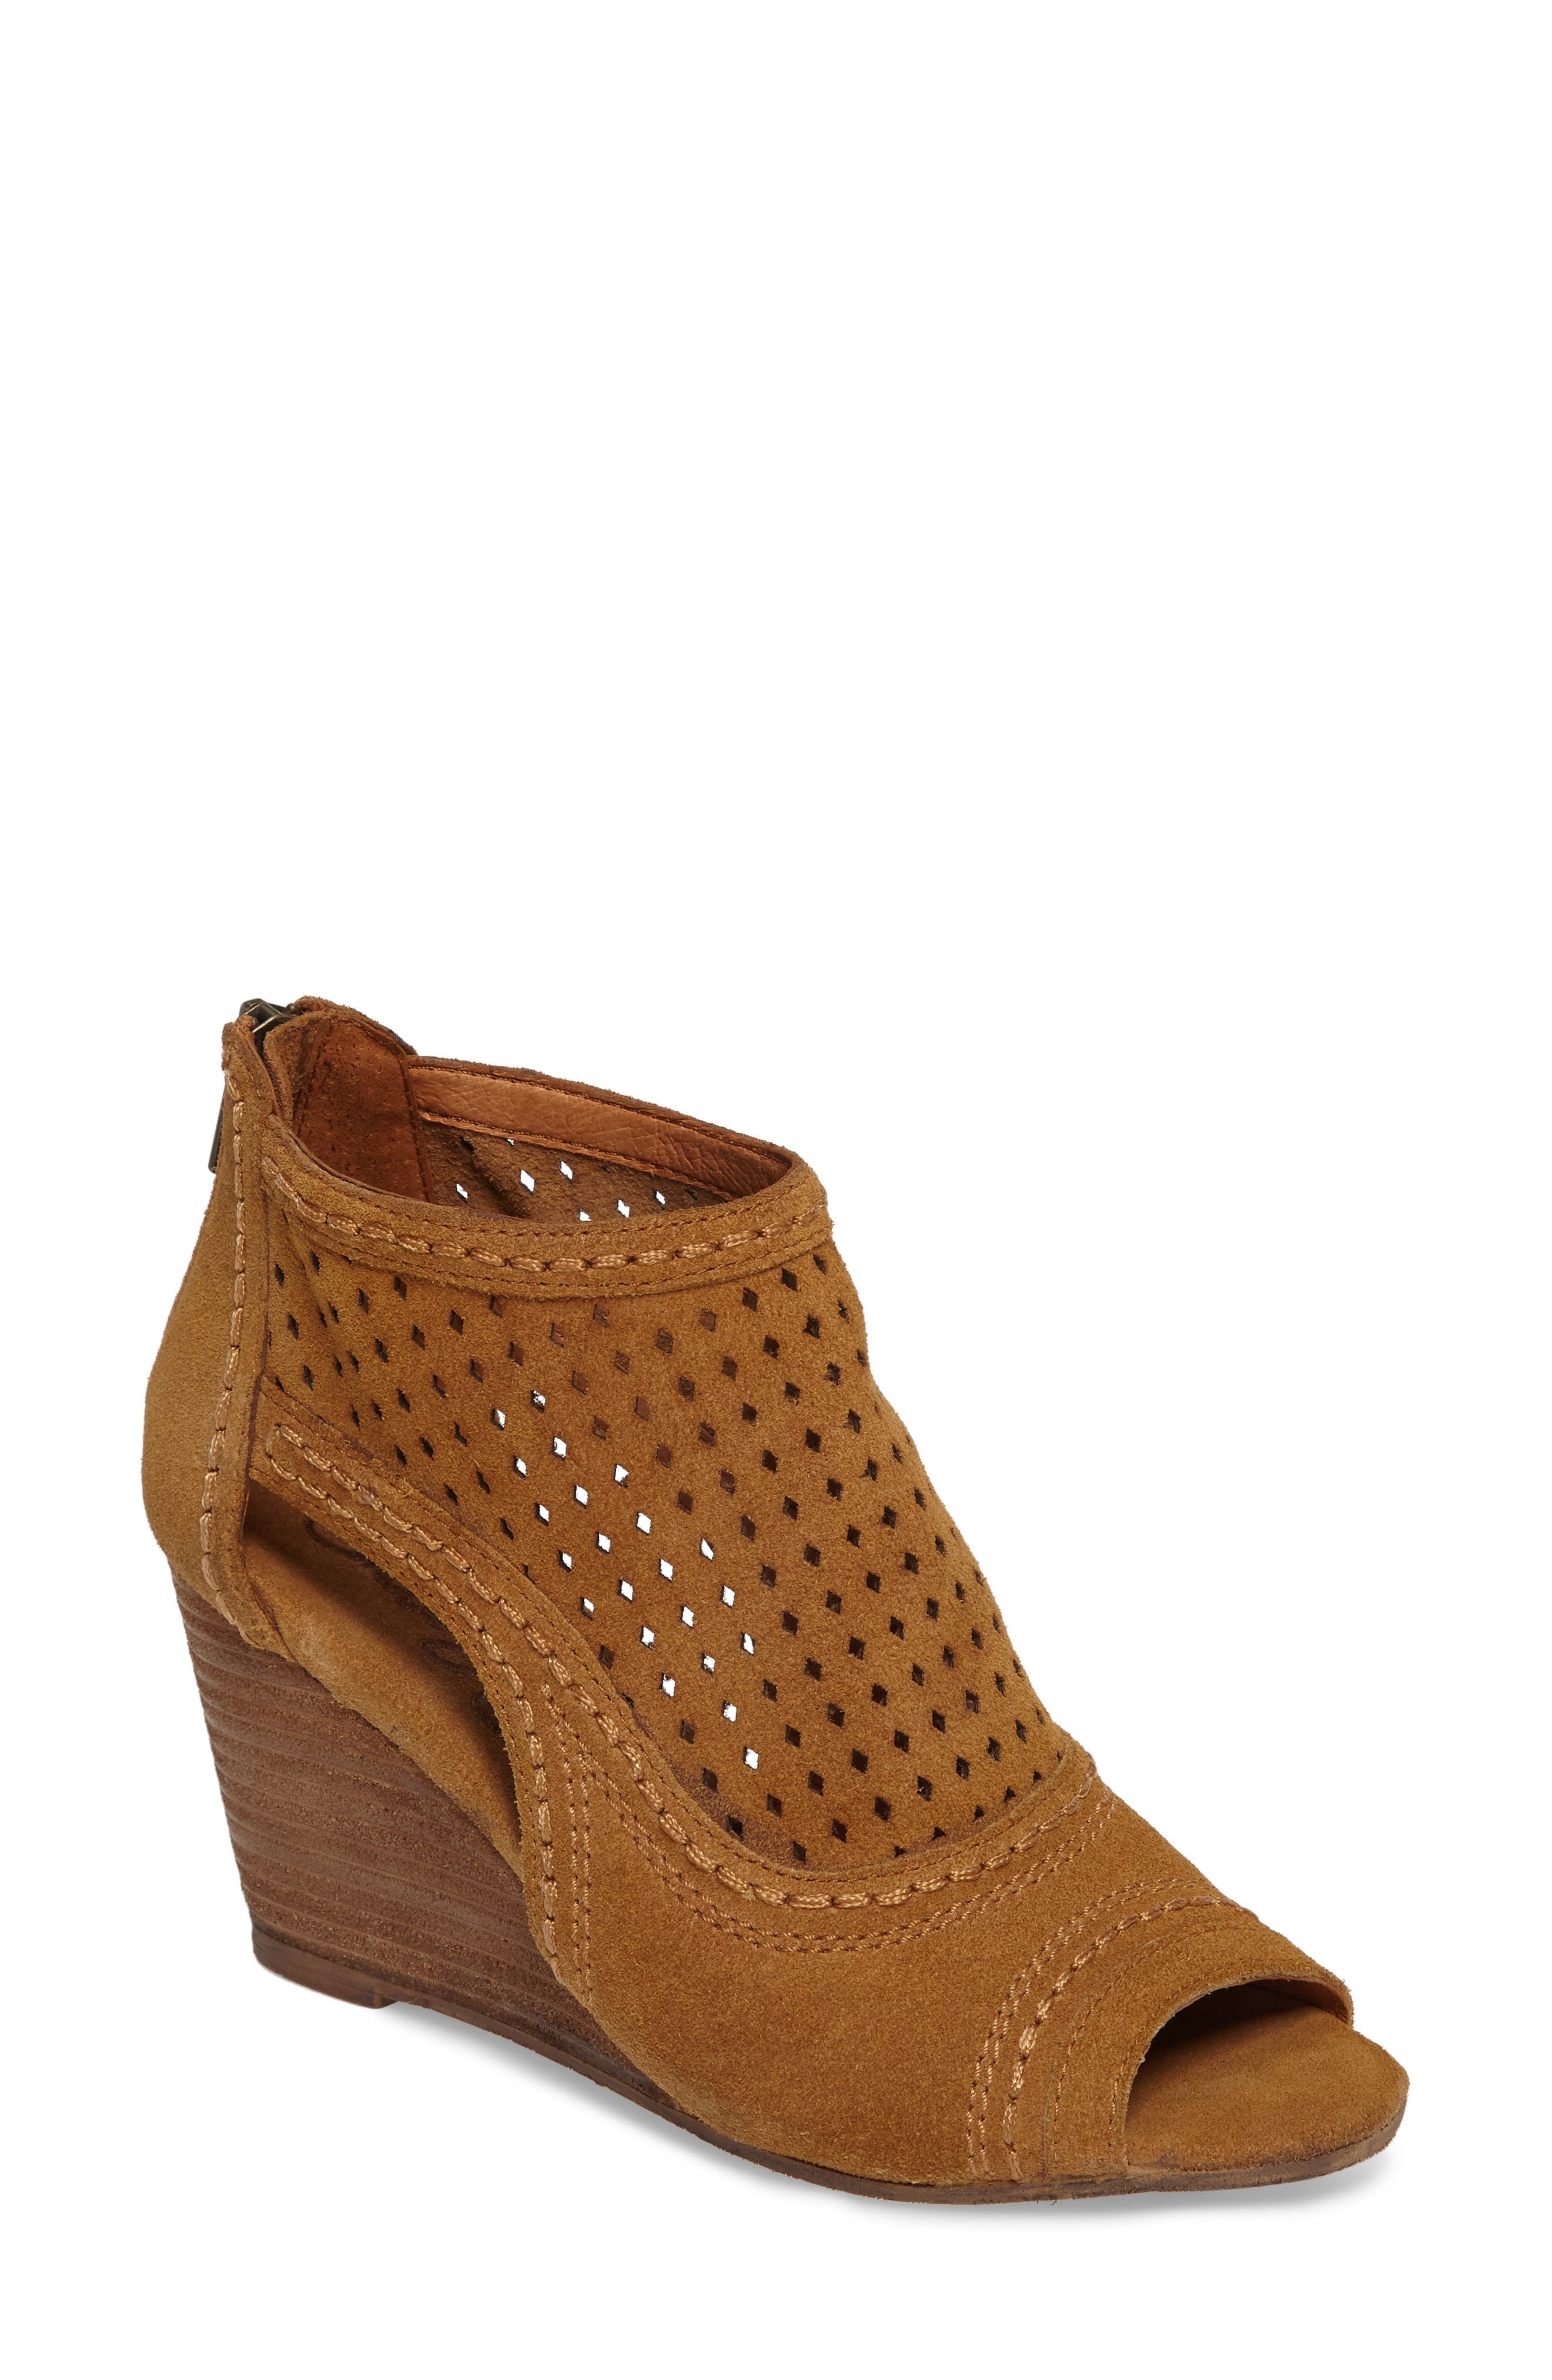 Naughty Monkey Sharon Perforated Wedge Sandal (Women)